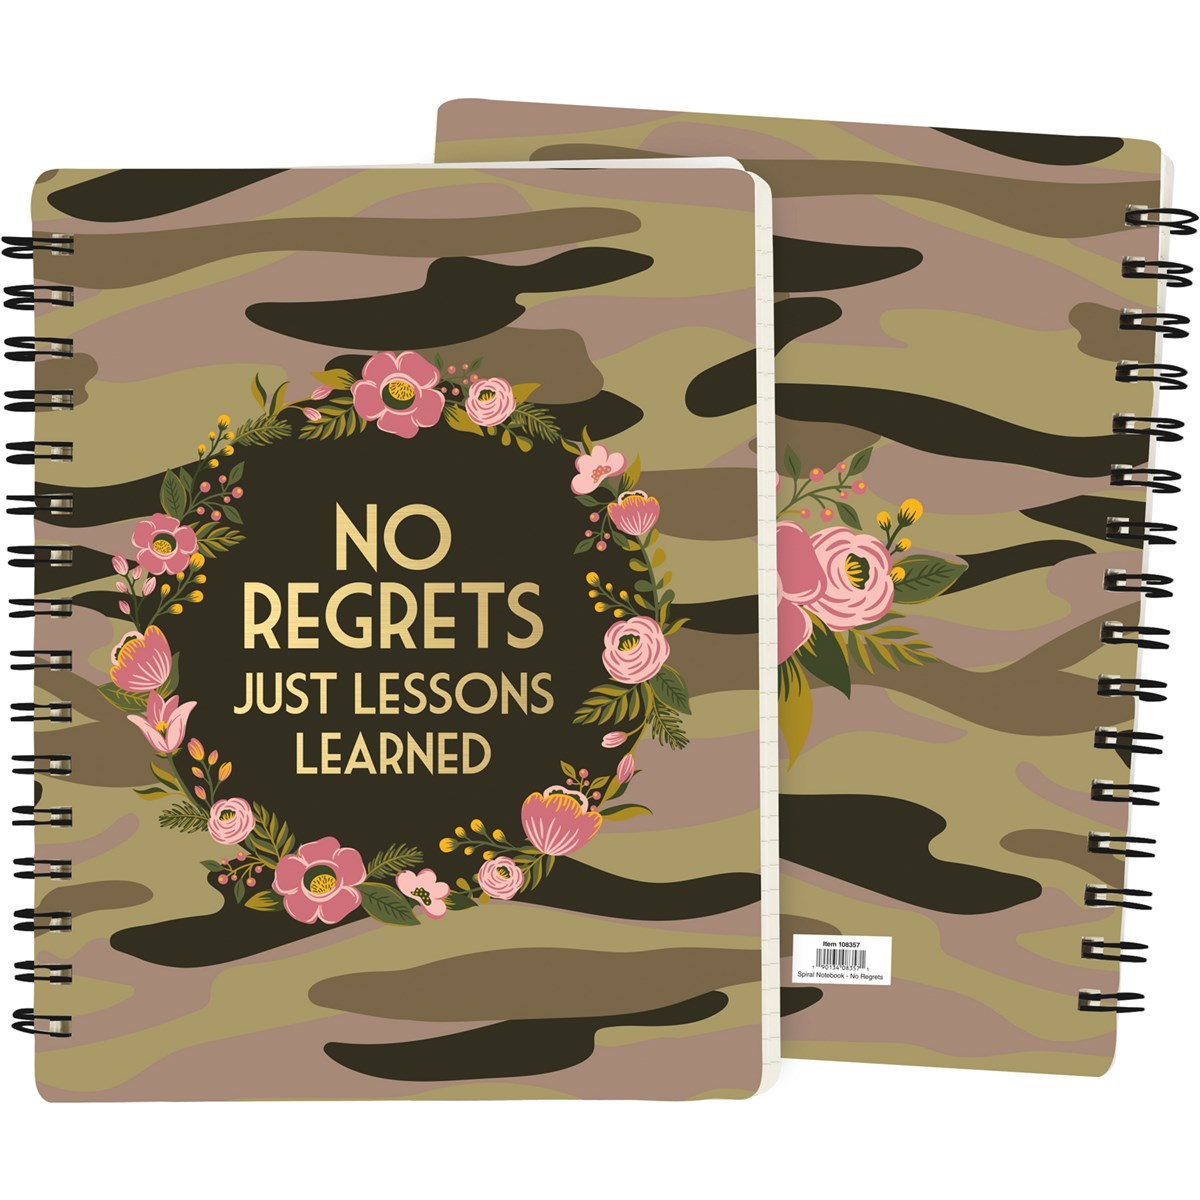 "Spiral Notebook - No Regrets Juse Lessons Learned - 5.75"" x 7.50"" x 0.50"" - Paper, Metal"